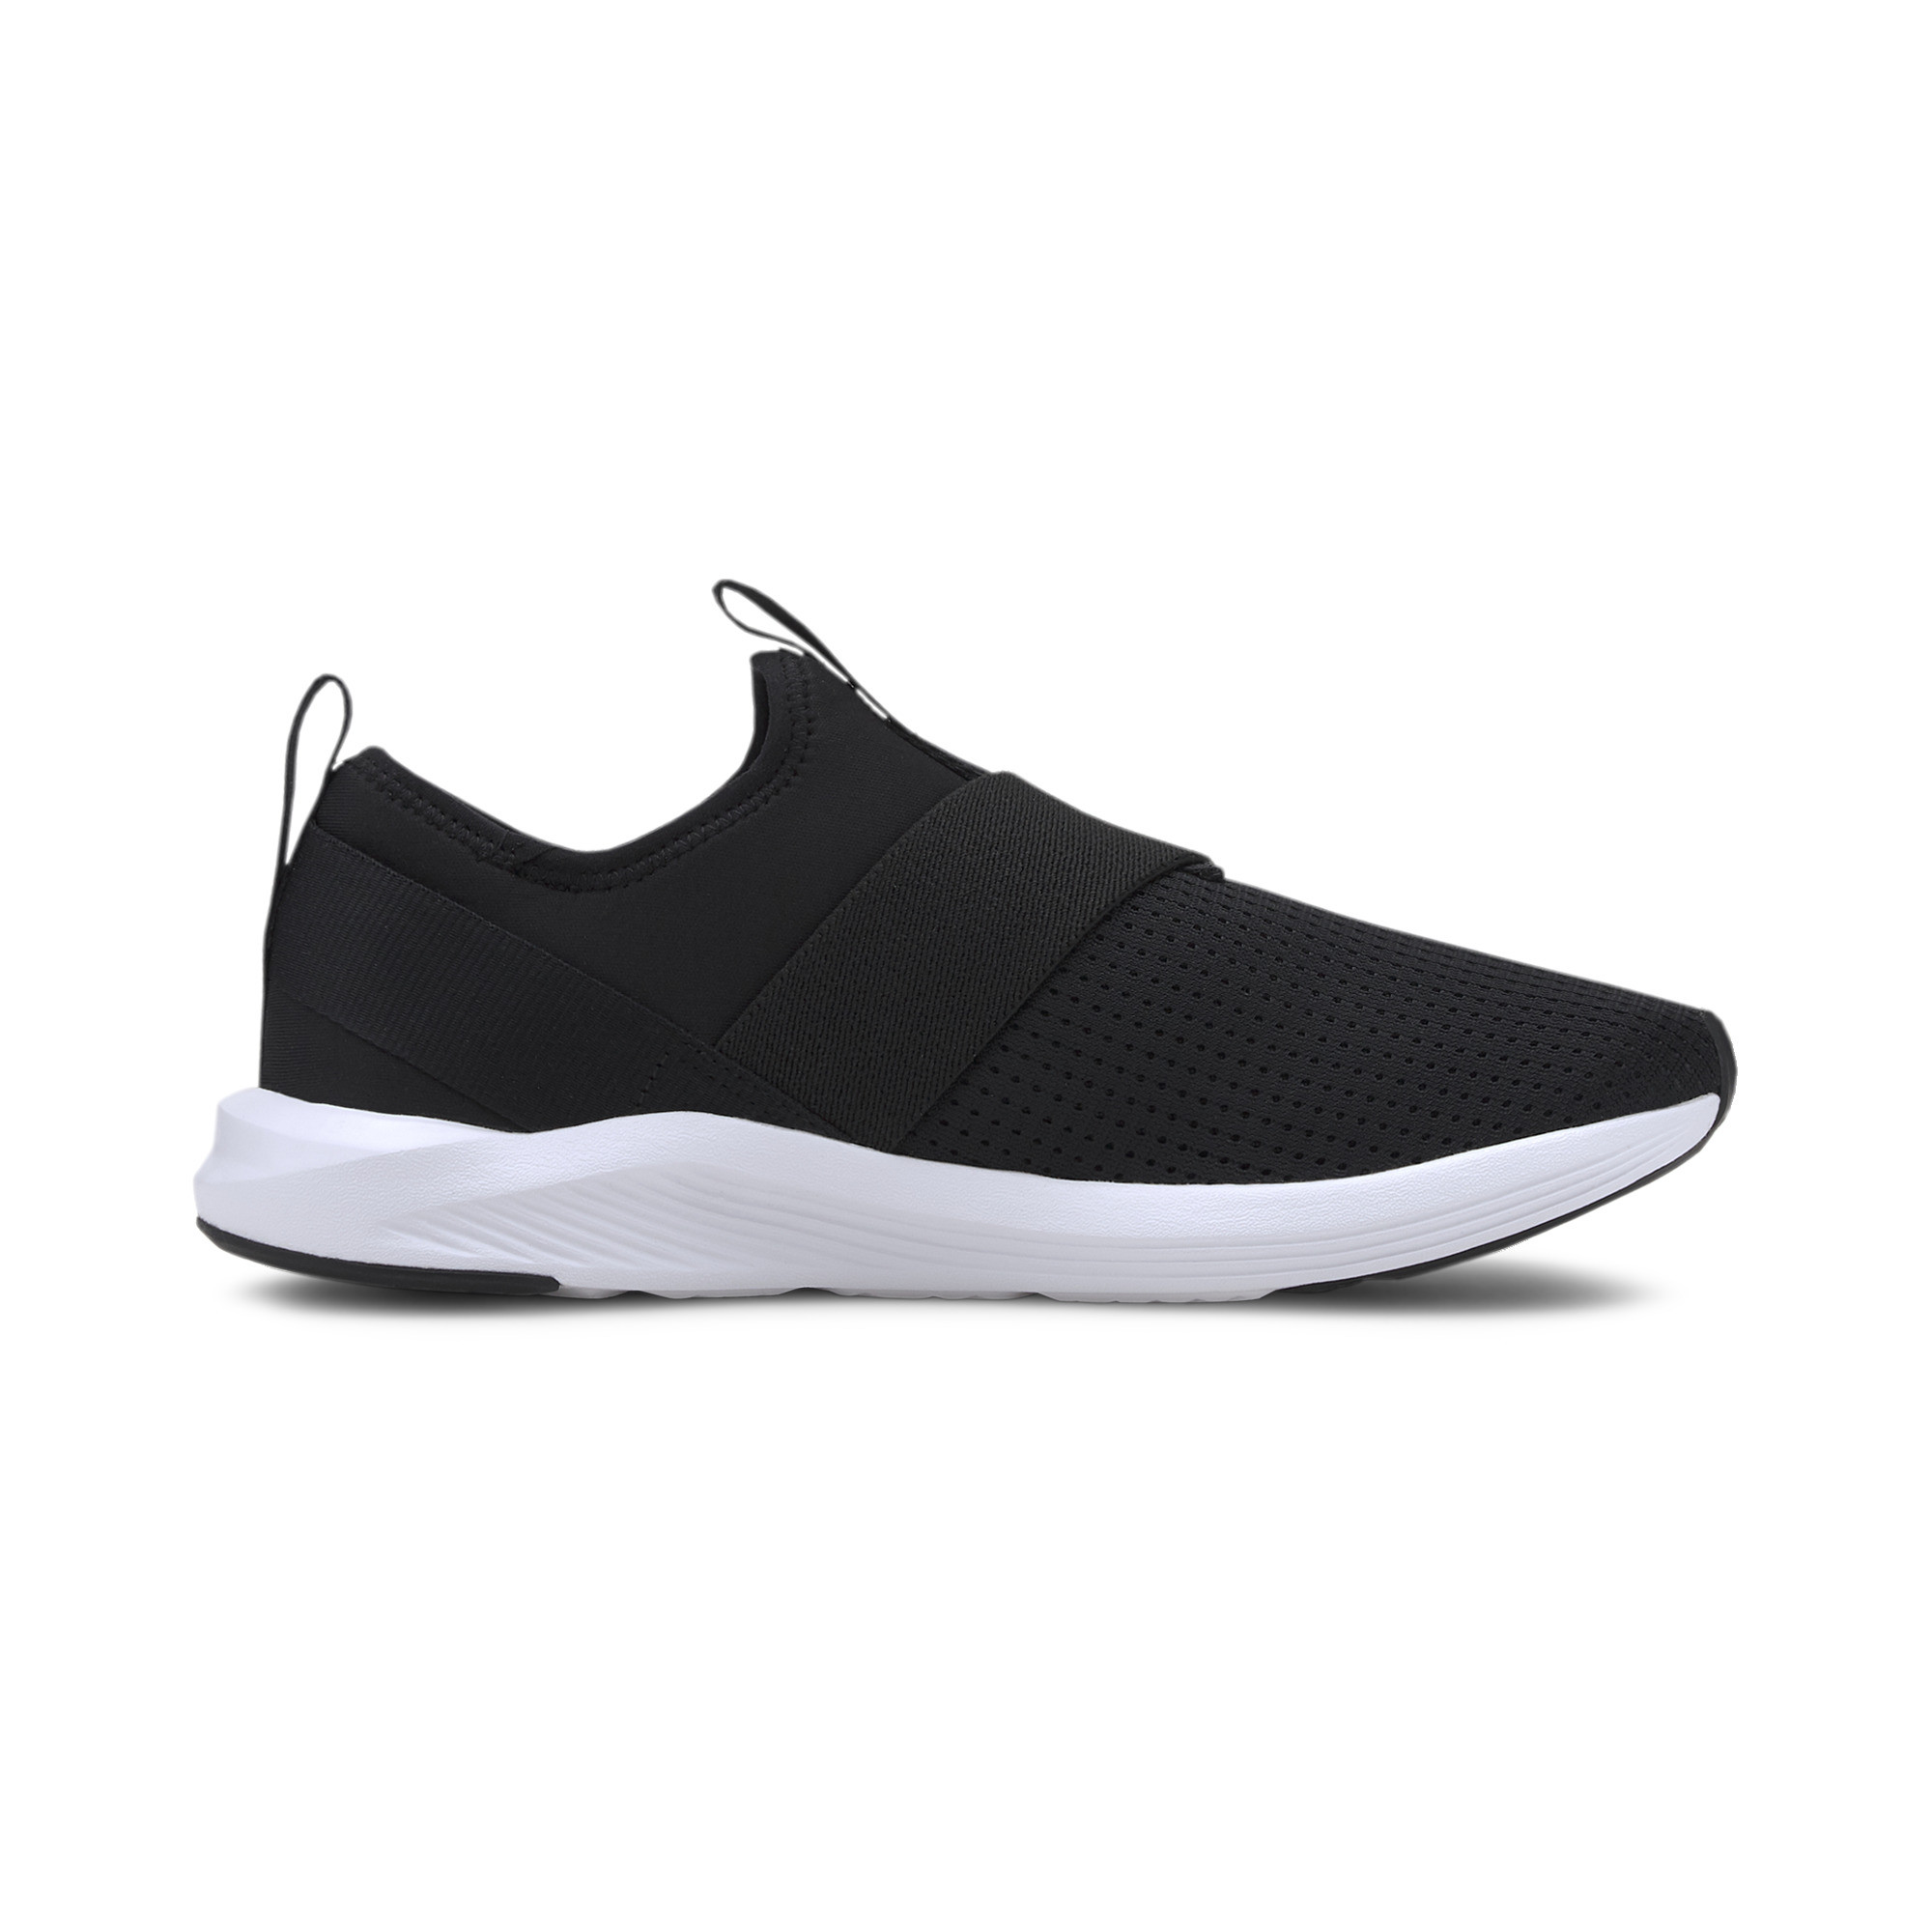 PUMA-Women-039-s-Prowl-Slip-On-Training-Shoes thumbnail 20